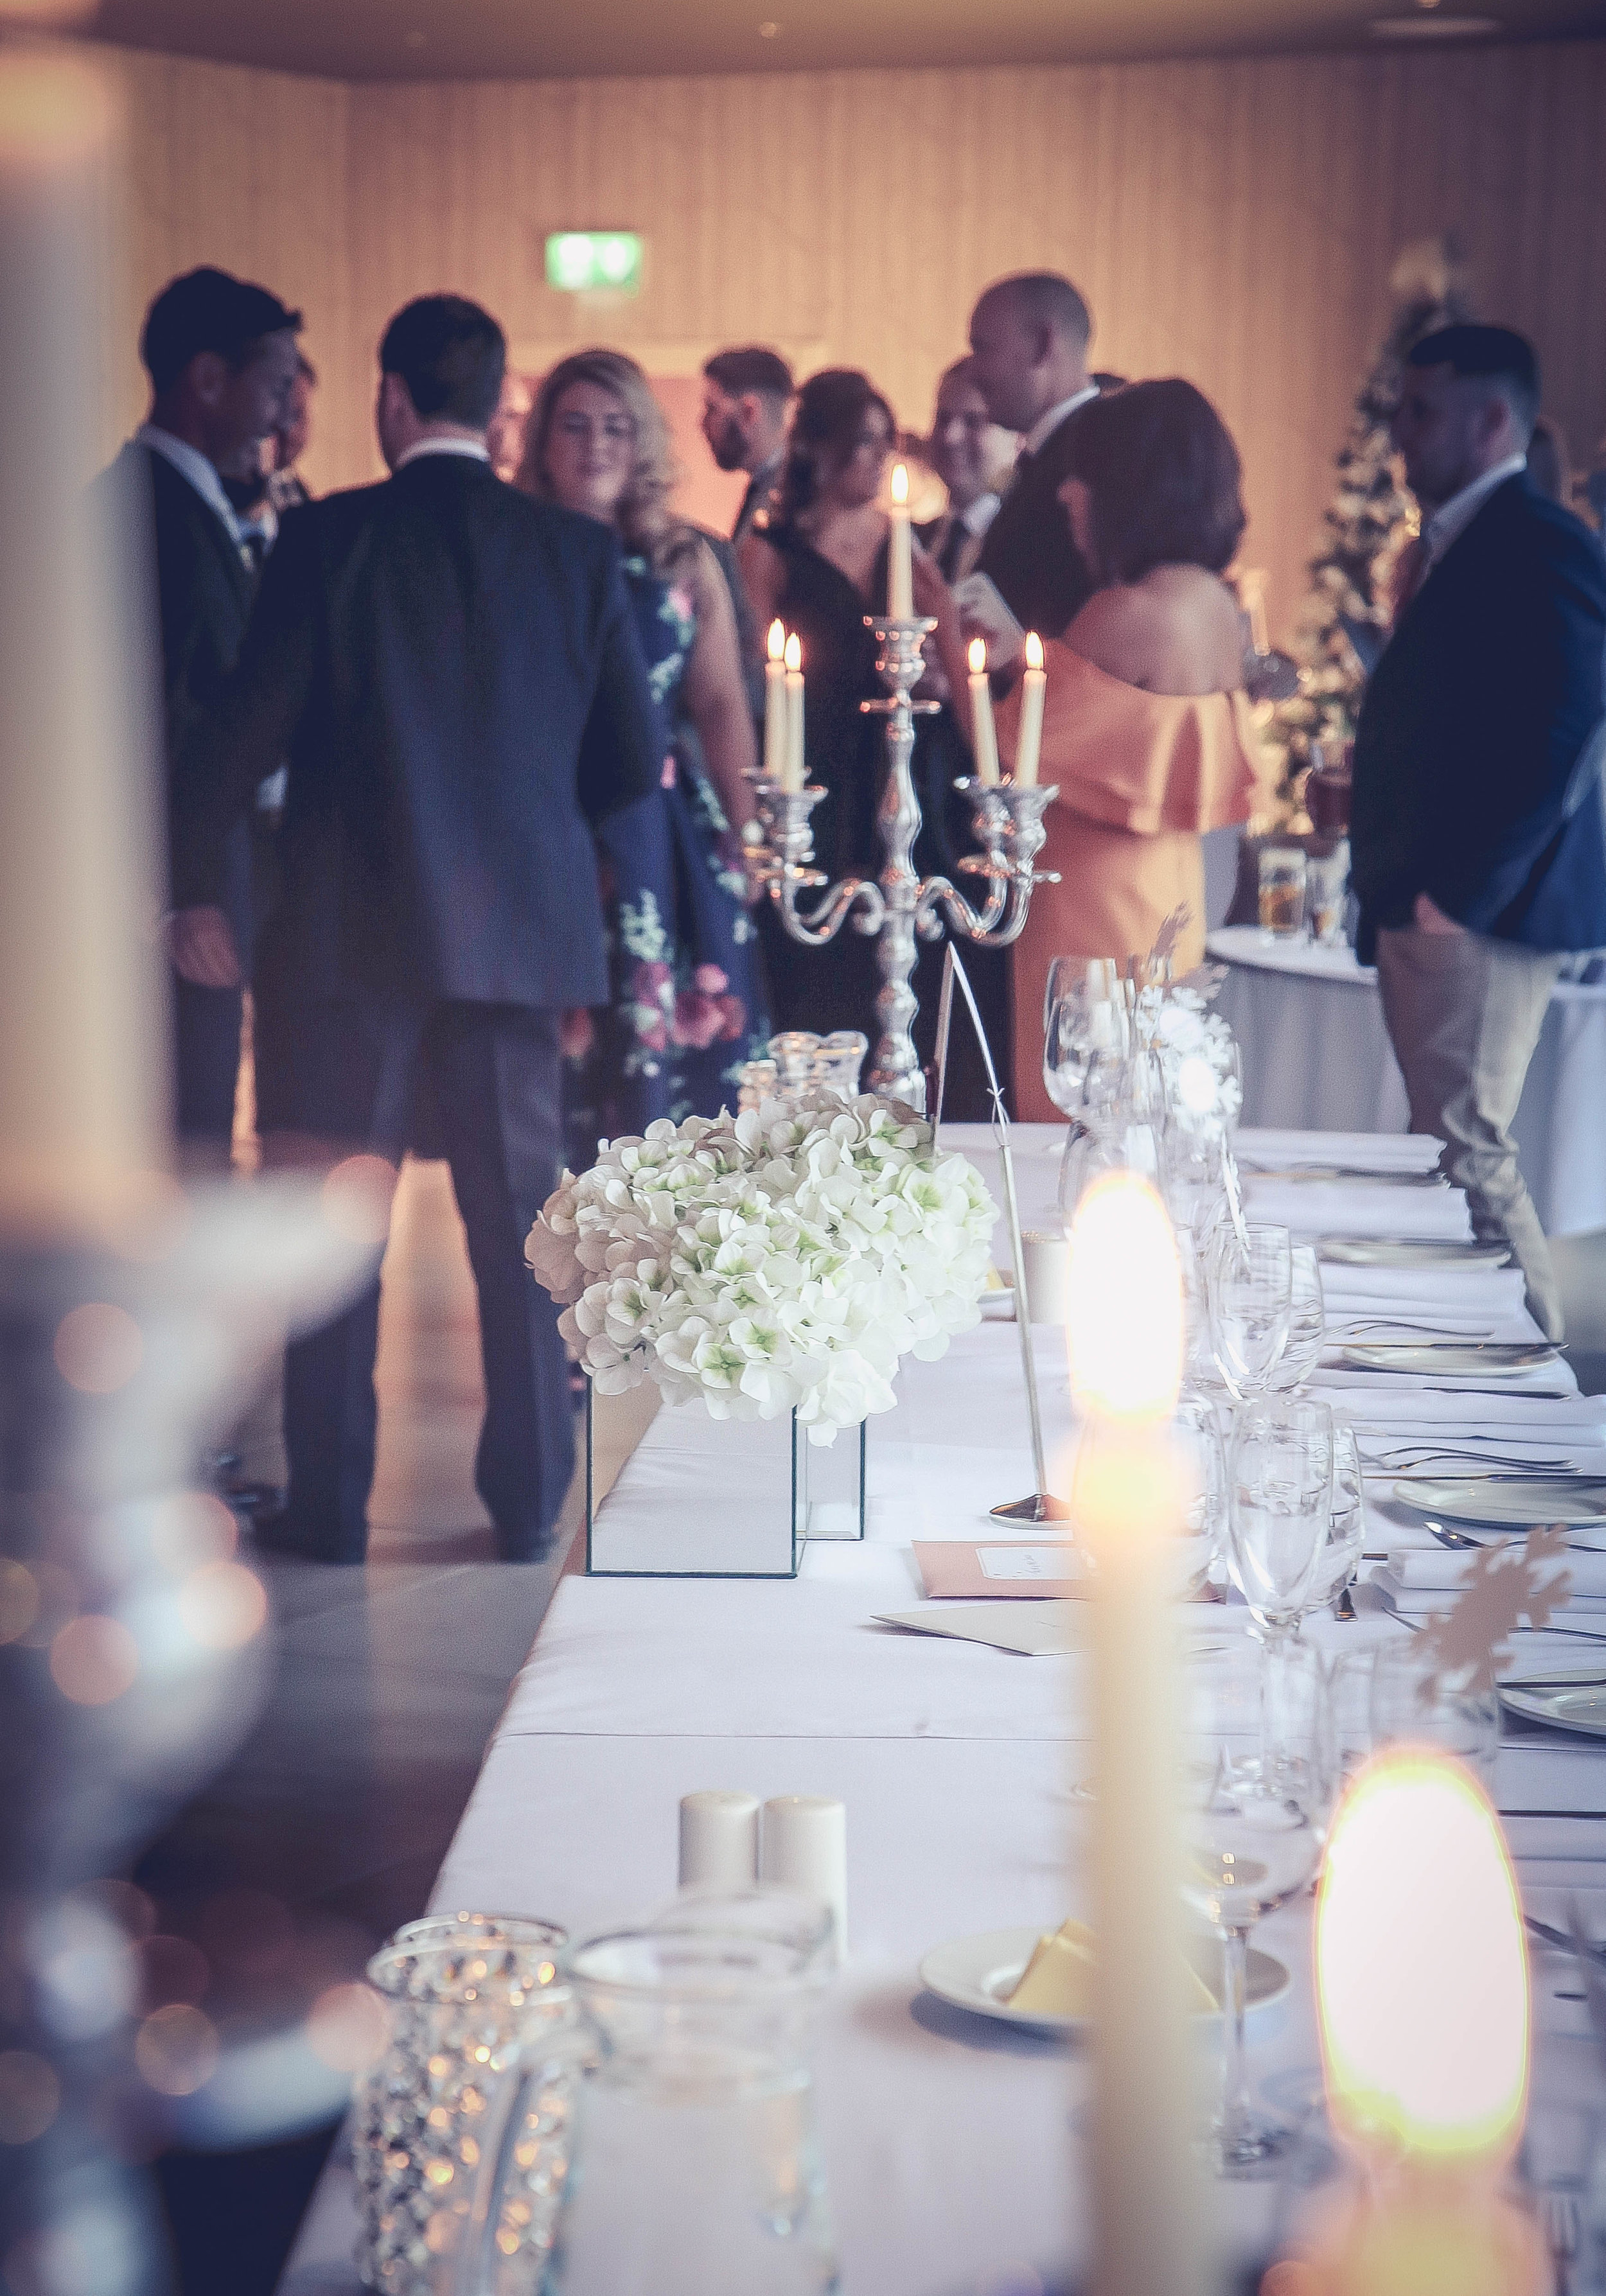 Weddings at the shankly hotel liverpool-107.jpg